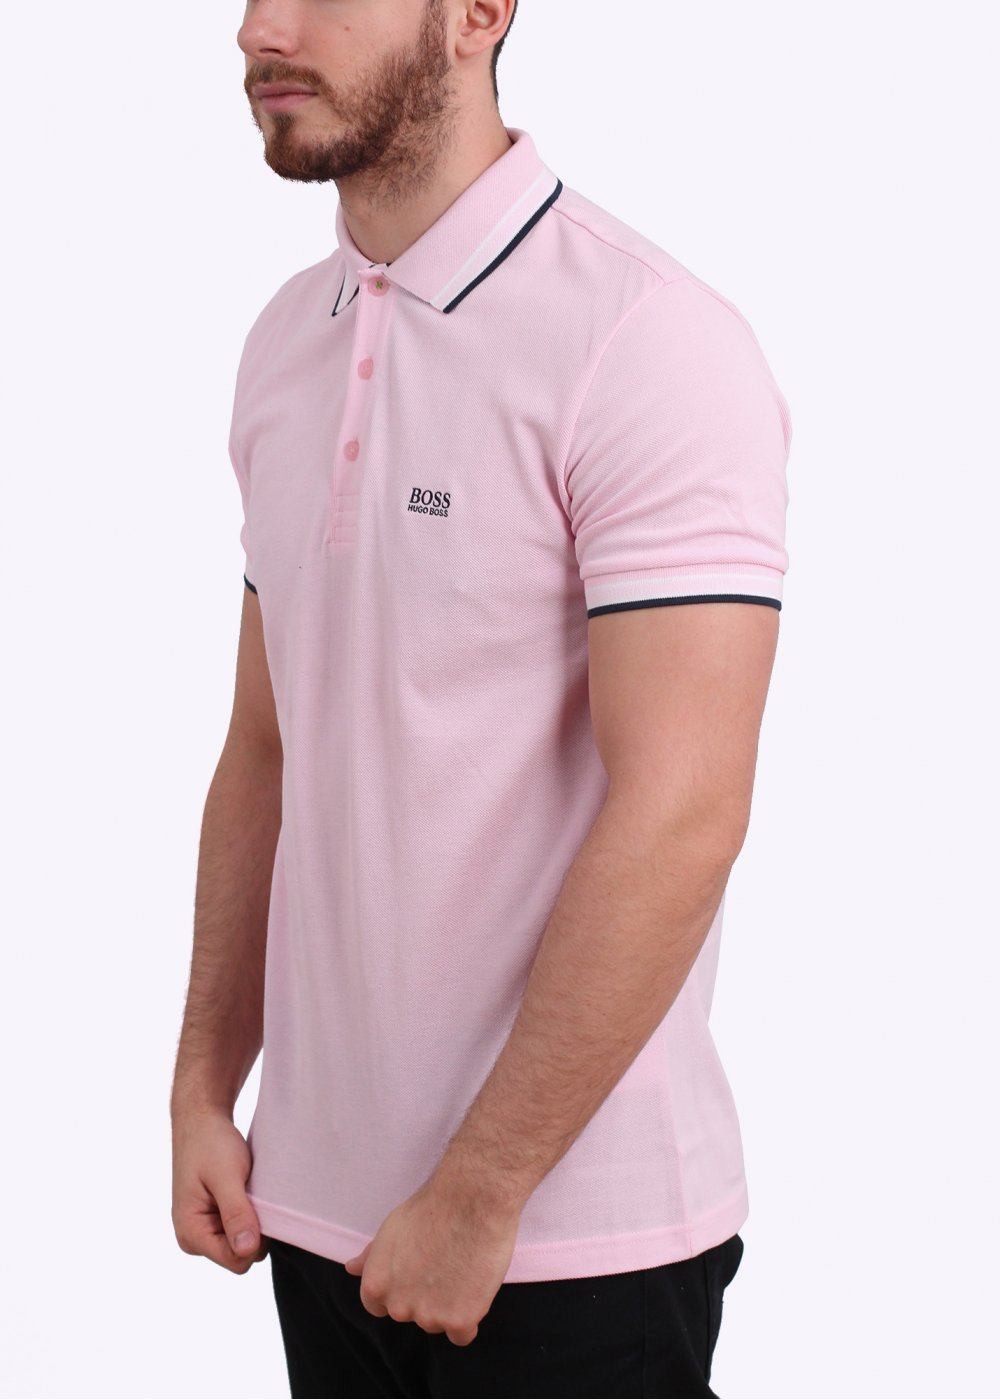 Hugo boss green paddy polo shirt bright pink hugo boss for Hugo boss green polo shirt sale